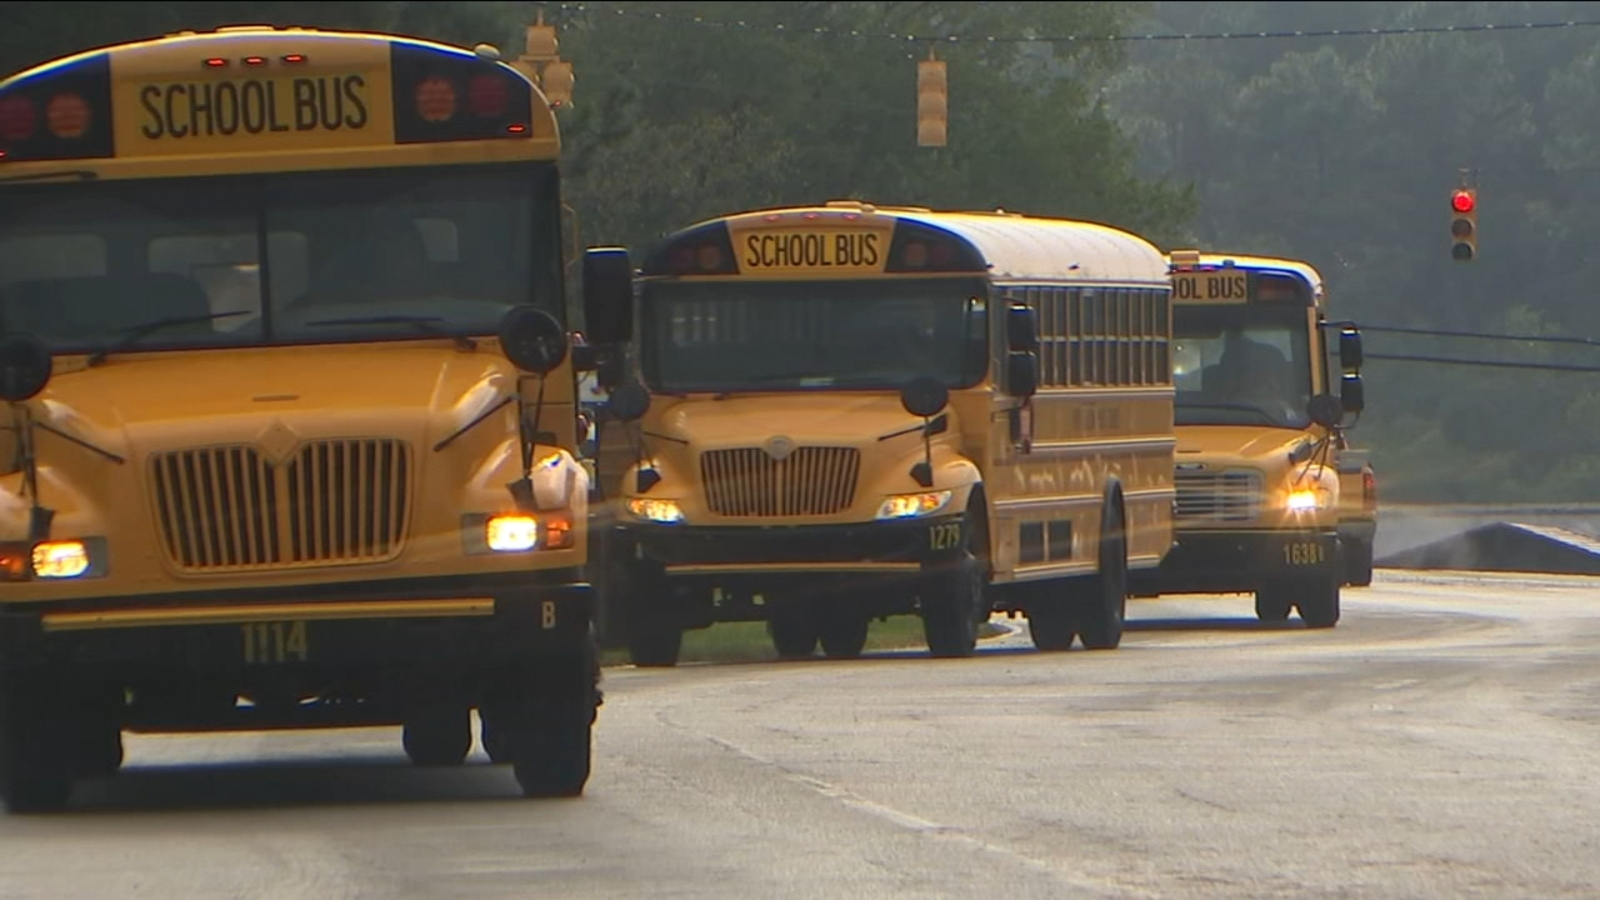 Wake County operates some of the school buses recalled for potentially unsafe seats